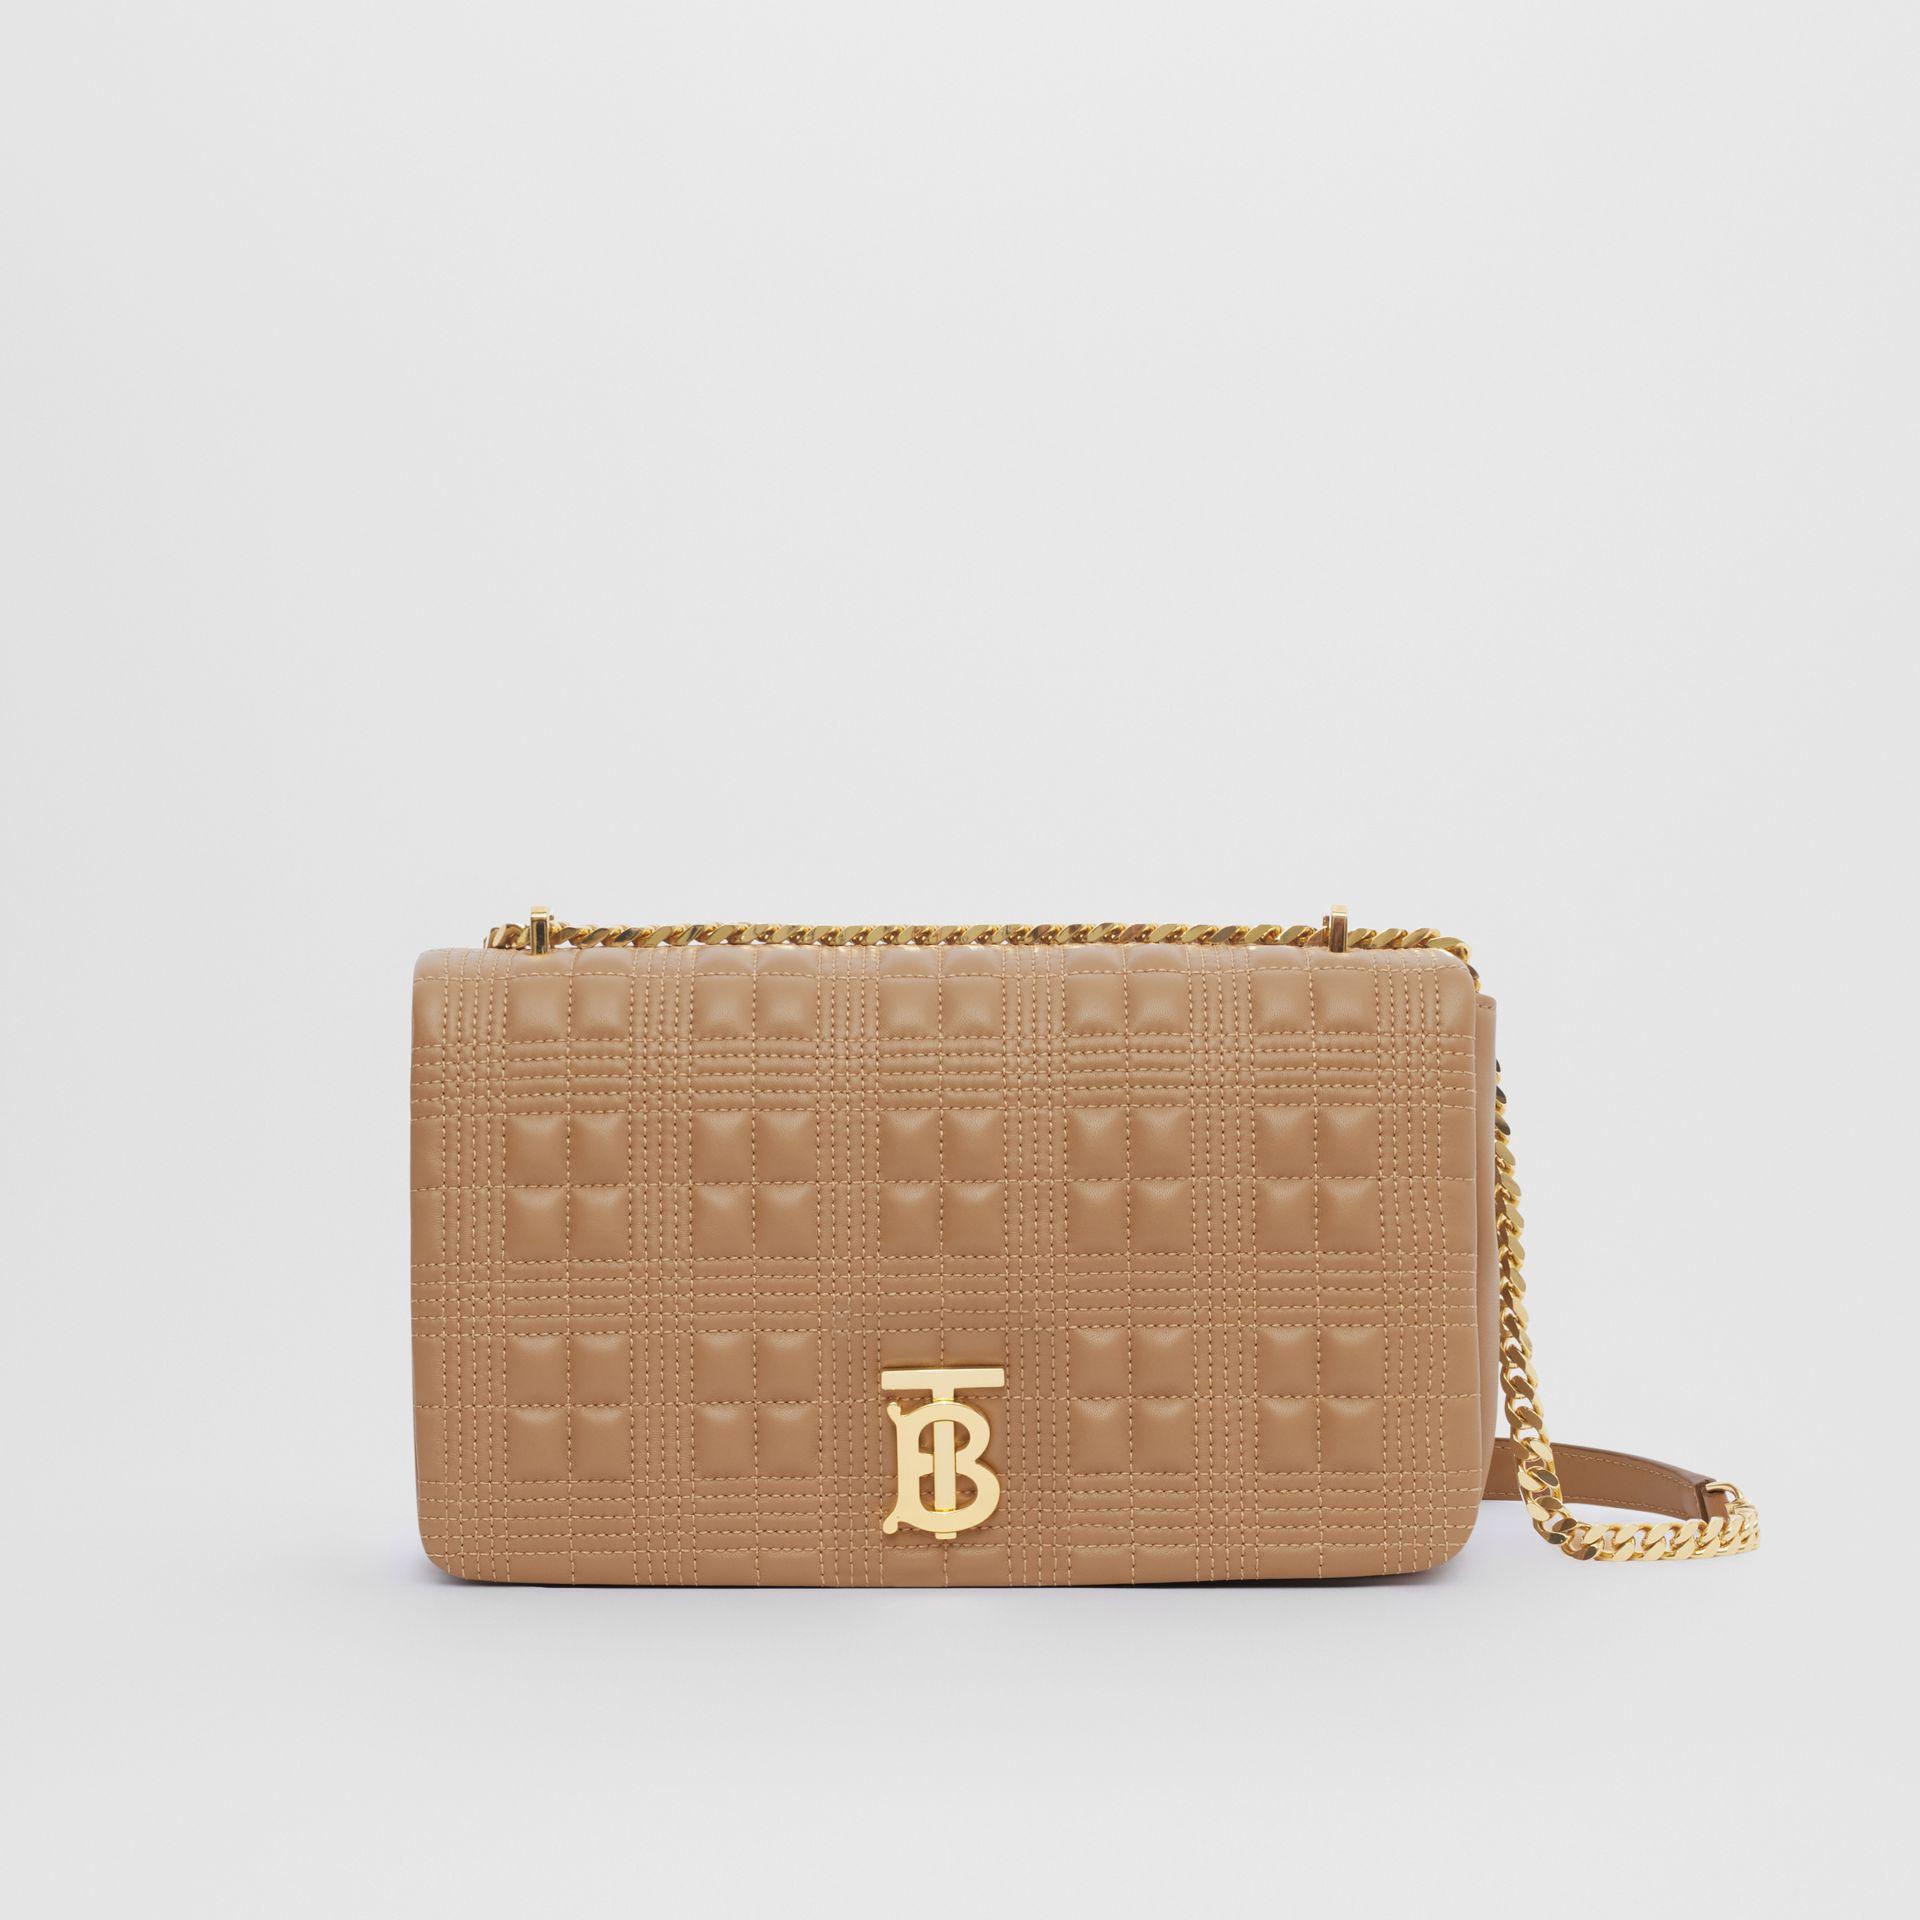 Medium Quilted Lambskin Lola Bag in Camel/light Gold - Women | Burberry Australia - gallery image 0